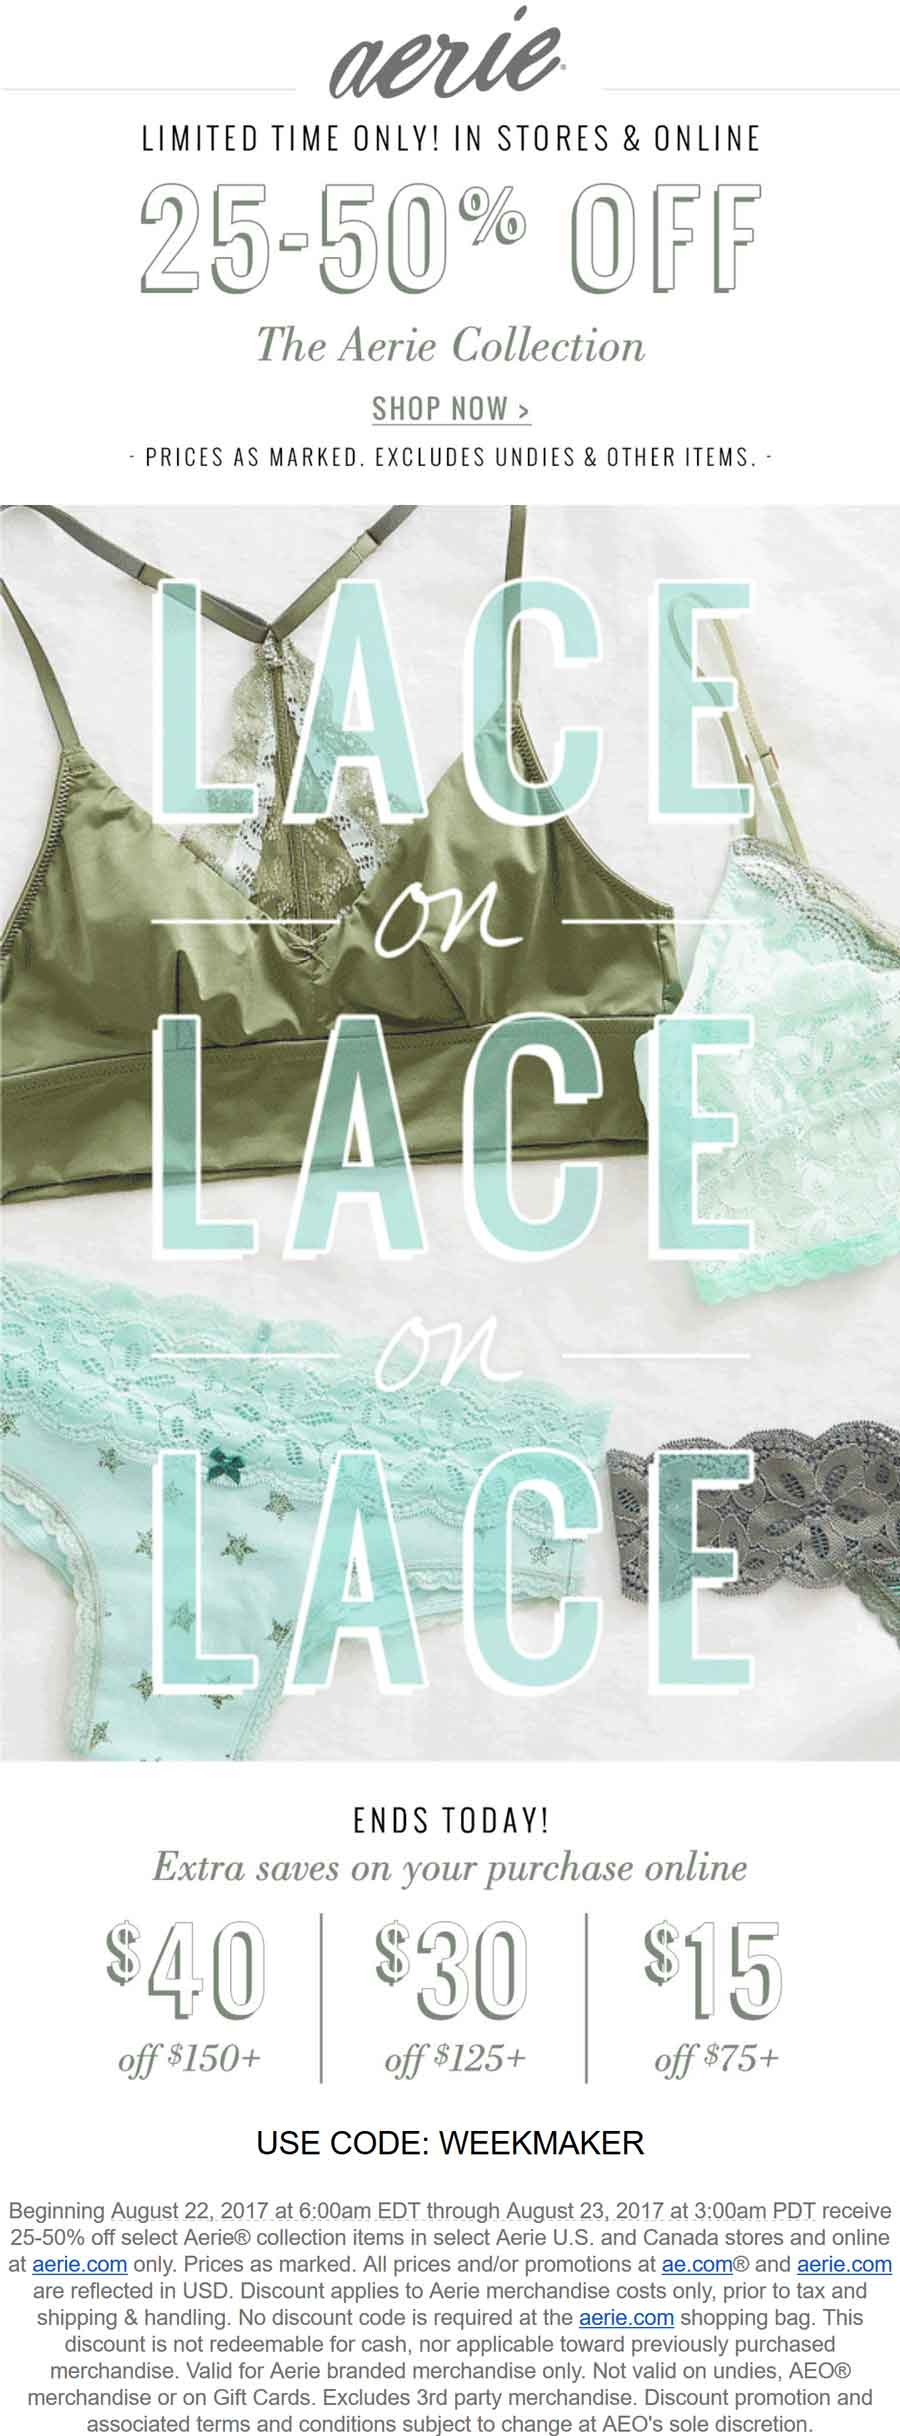 Aerie Coupon March 2019 25-50% off the collection at Aerie, or $15 off $75 & more online via promo code WEEKMAKER